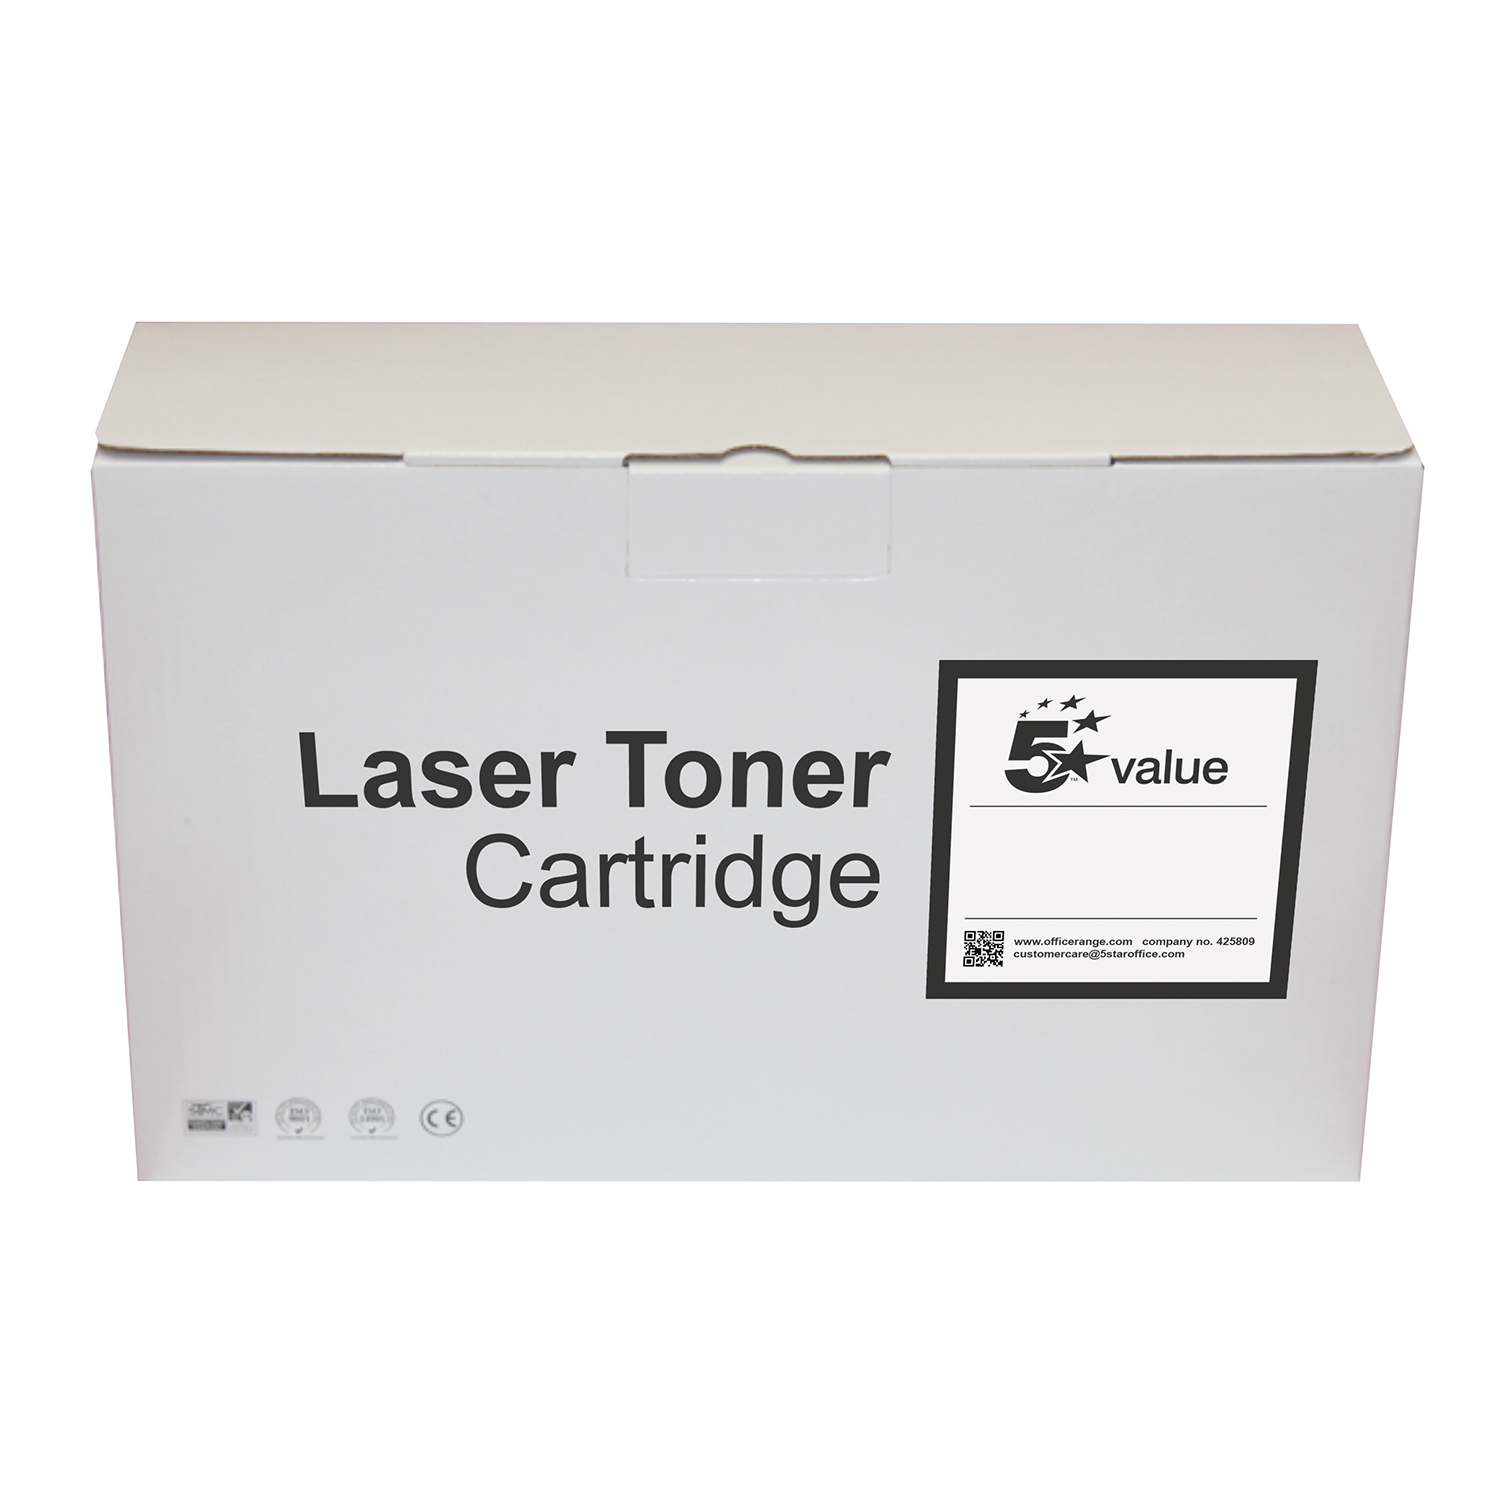 5 Star Value Remanufactured Laser Toner Cartridge Page Life 2600pp Cyan HP No. 305A CE411A Alternative